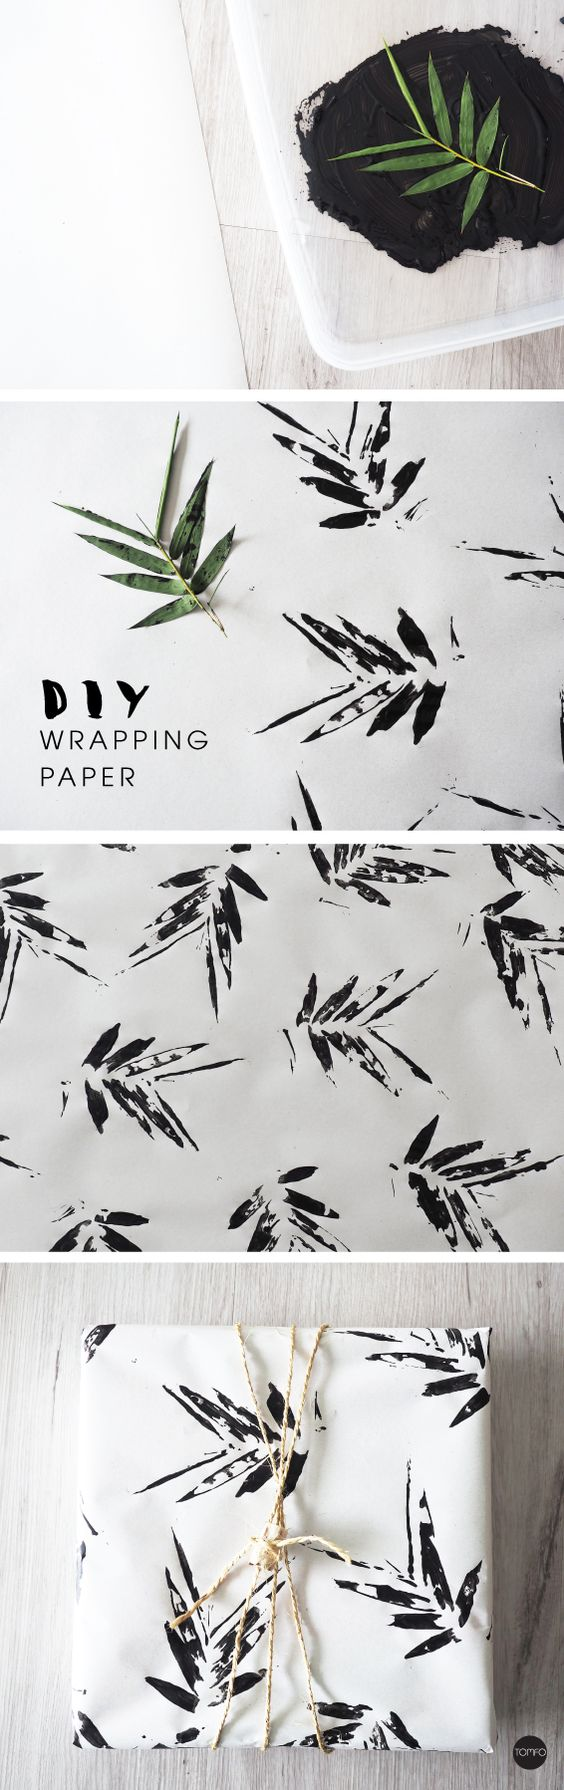 diy wallpaper gift wrapping paper wrap ideas xmas christmas